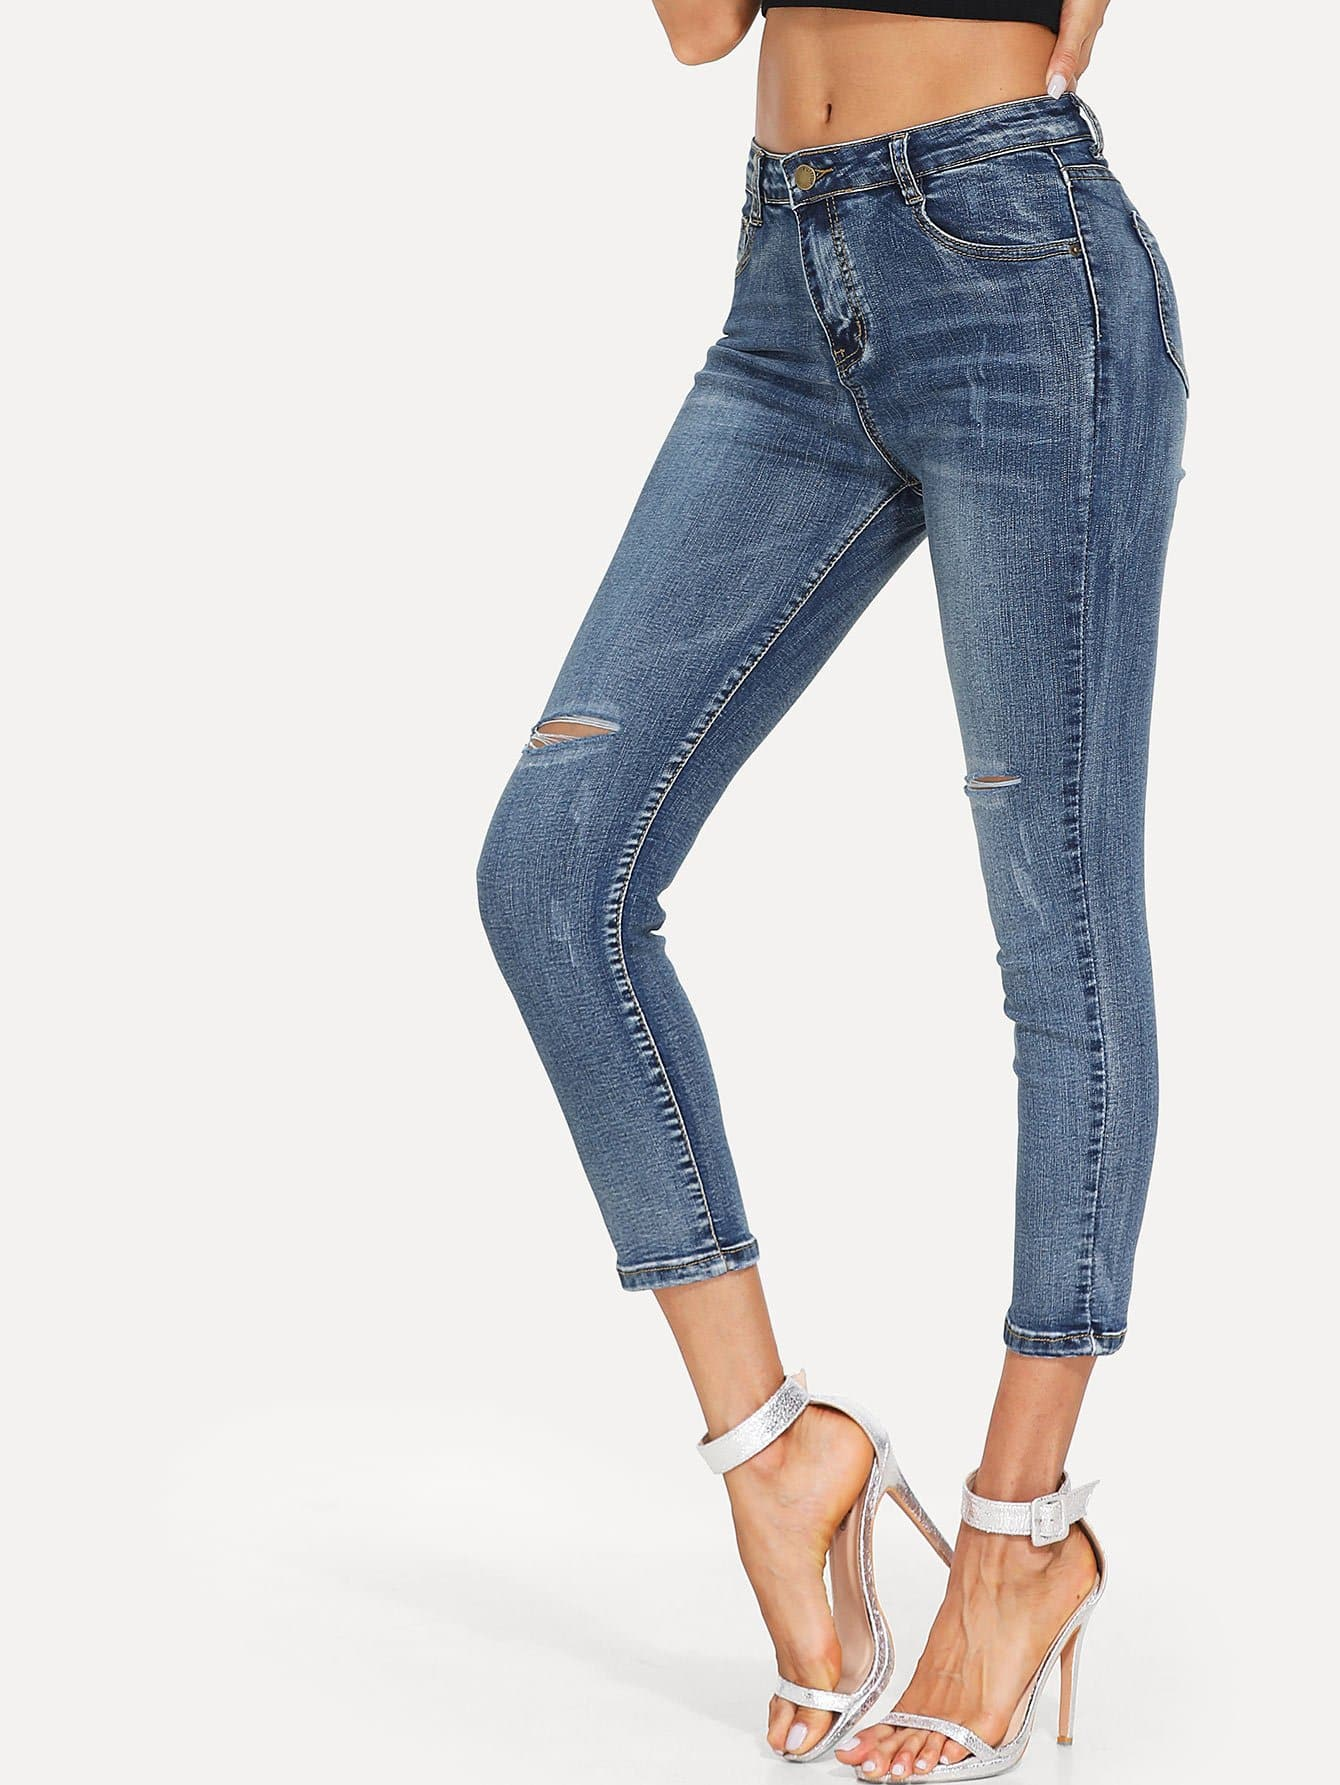 Ripped Basic Skinny Jeans 2016 hole jeans free shipping woman distressed true denim skinny jean pencil pants trousers ripped jeans for women 031